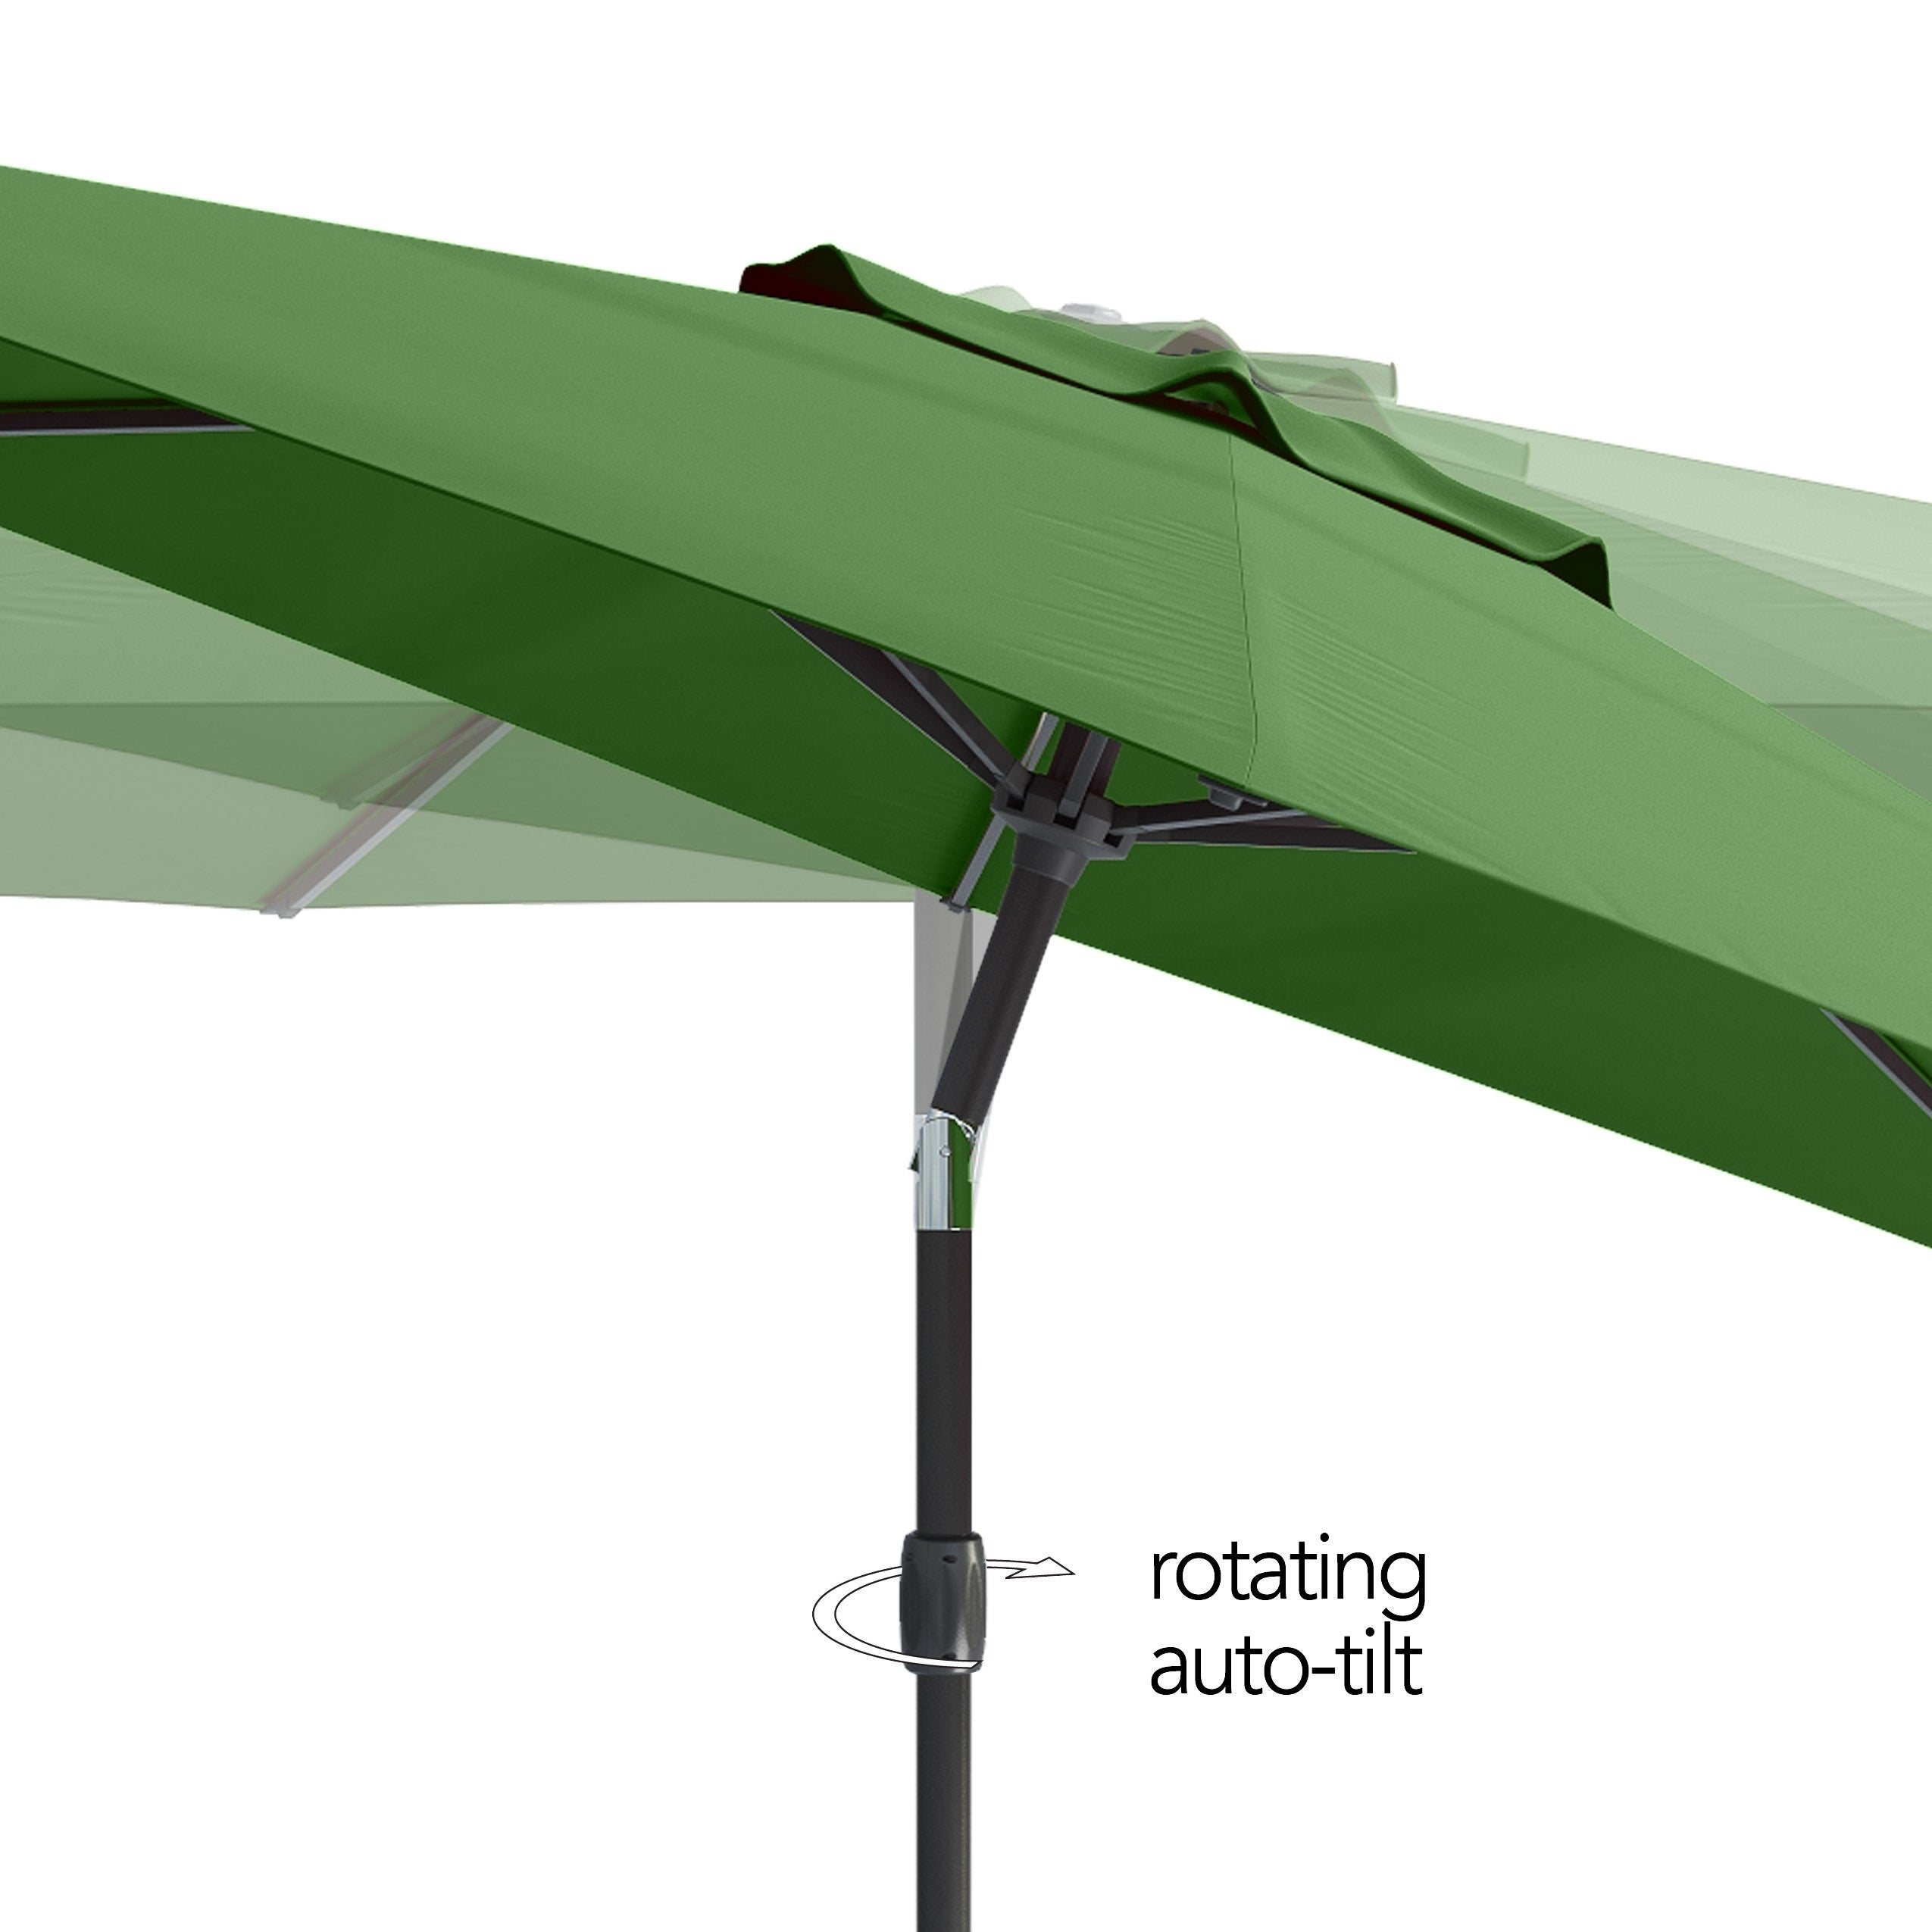 Attirant Shop CorLiving UV And Wind Resistant Tilting Patio Umbrella   Free Shipping  Today   Overstock.com   20695335